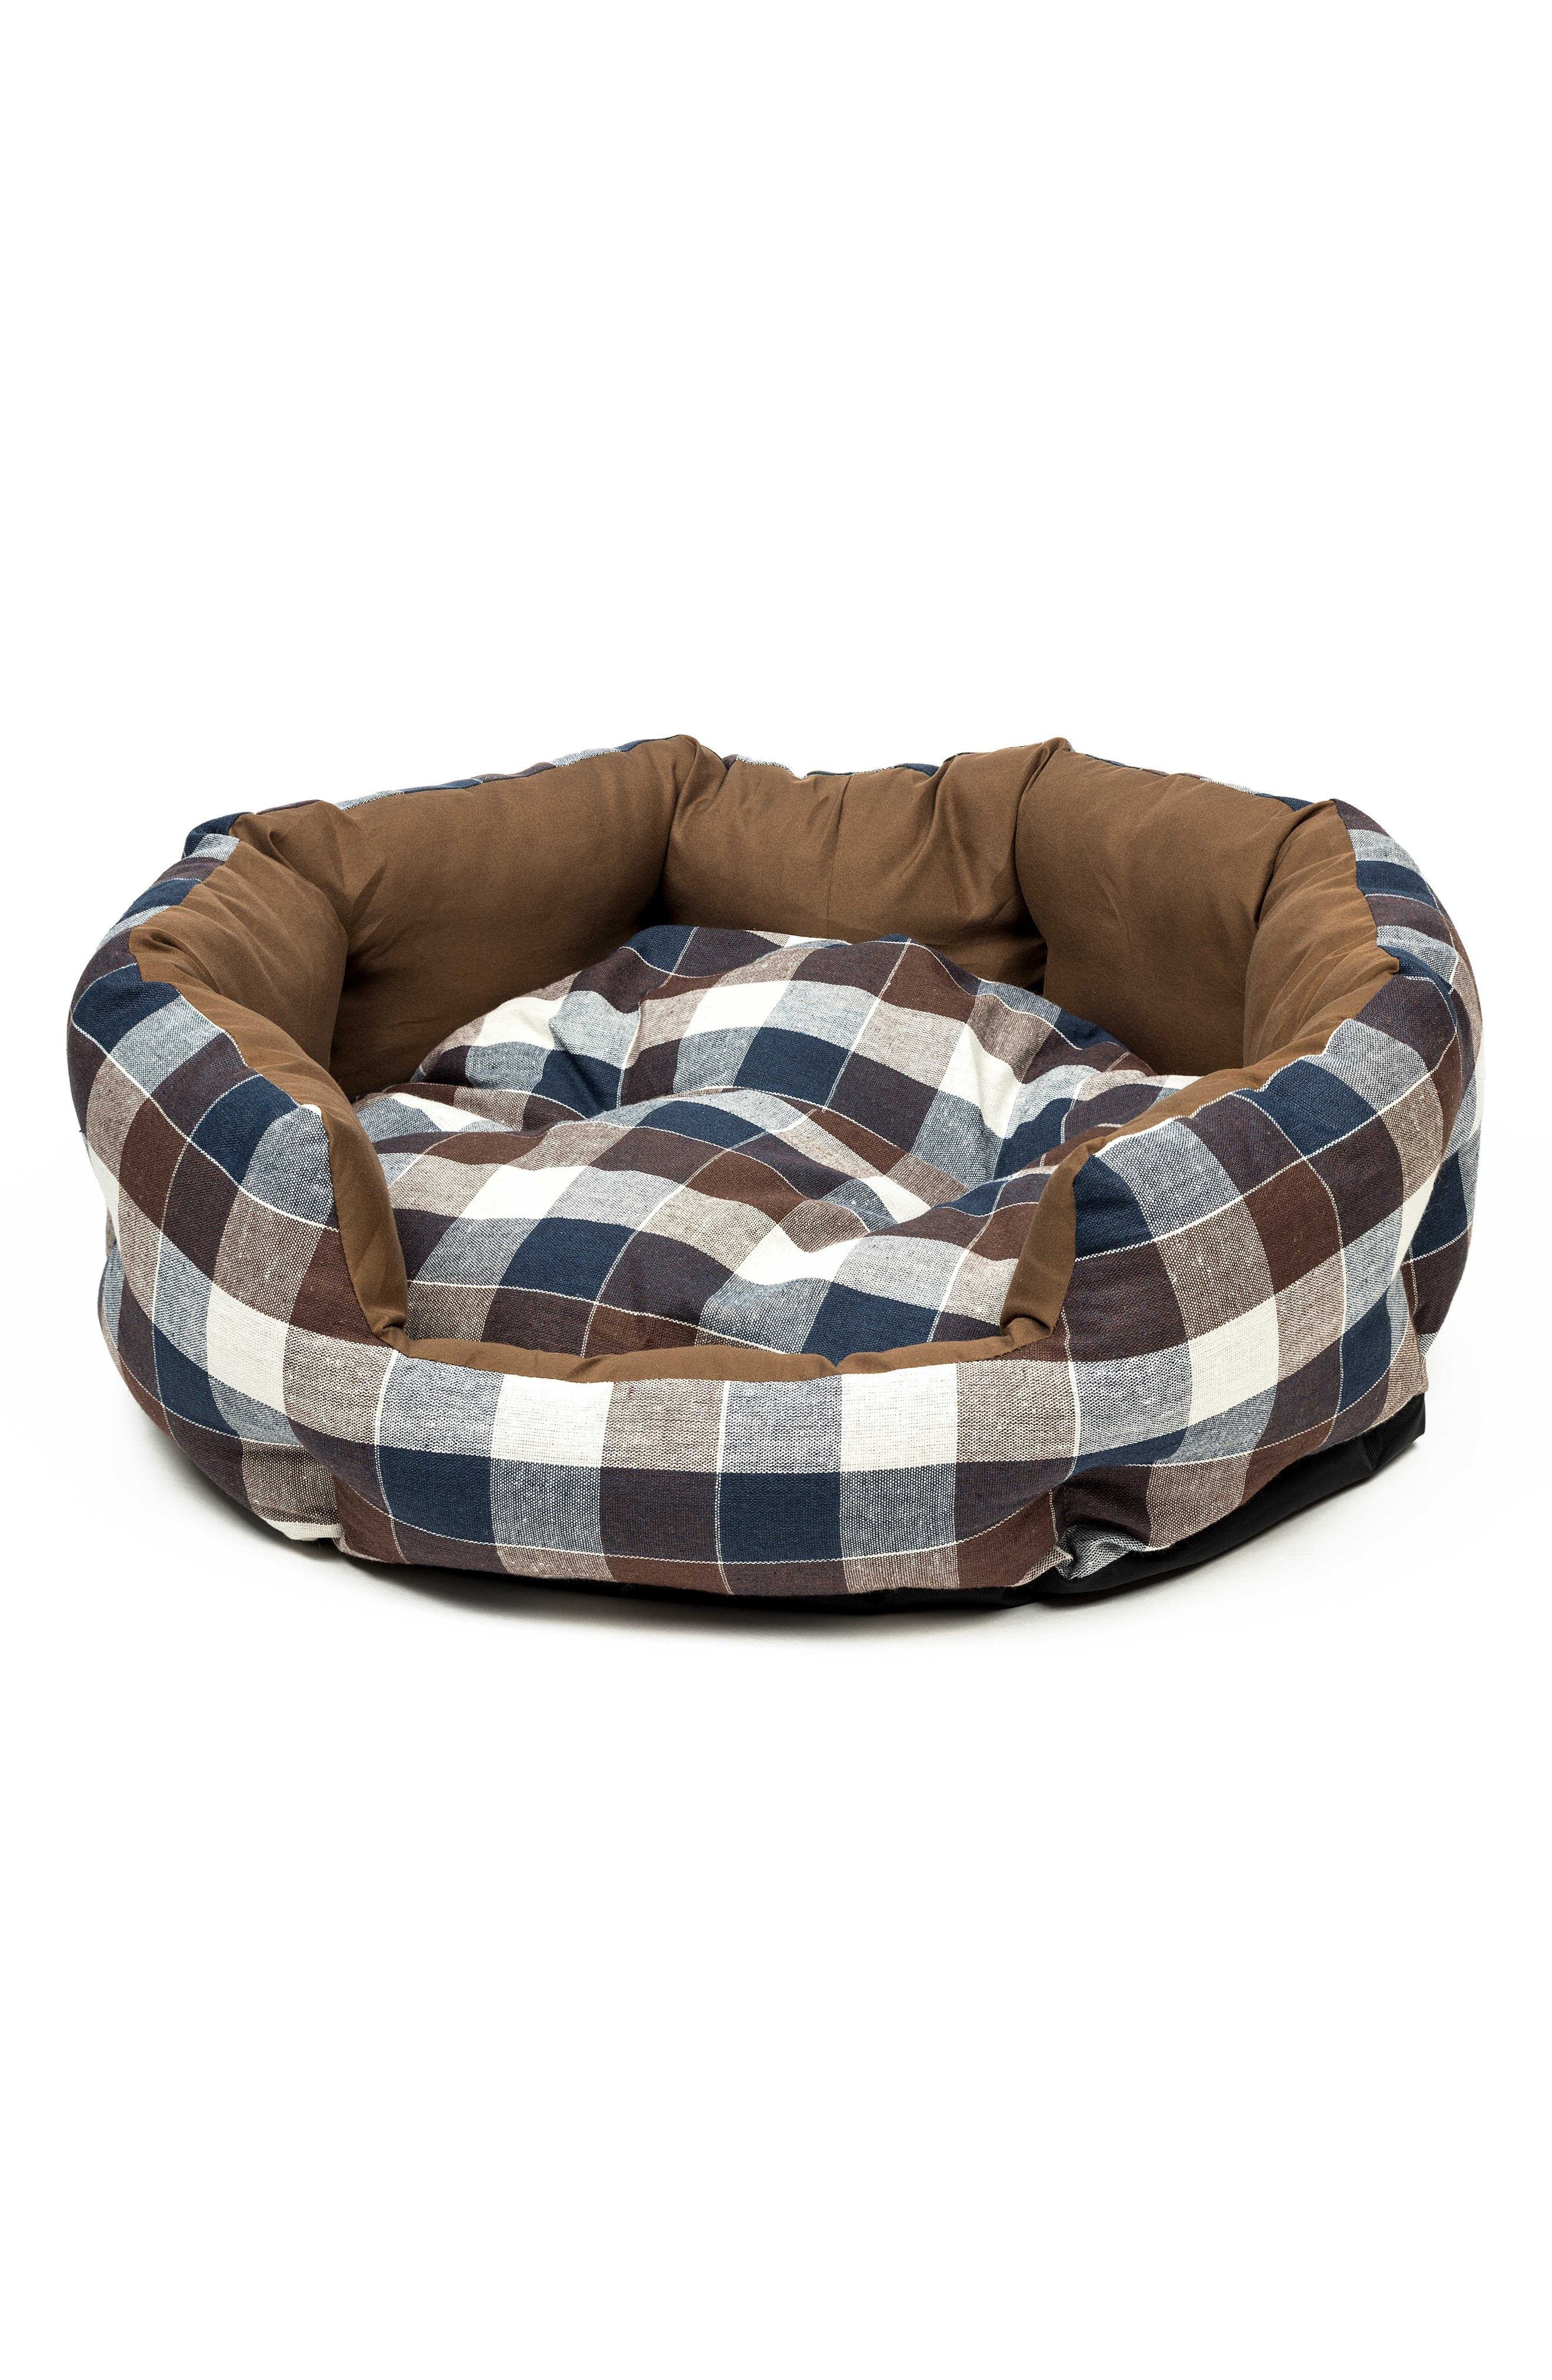 Duck River Textile Hasley Round Pet Bed Size One Size  Brown